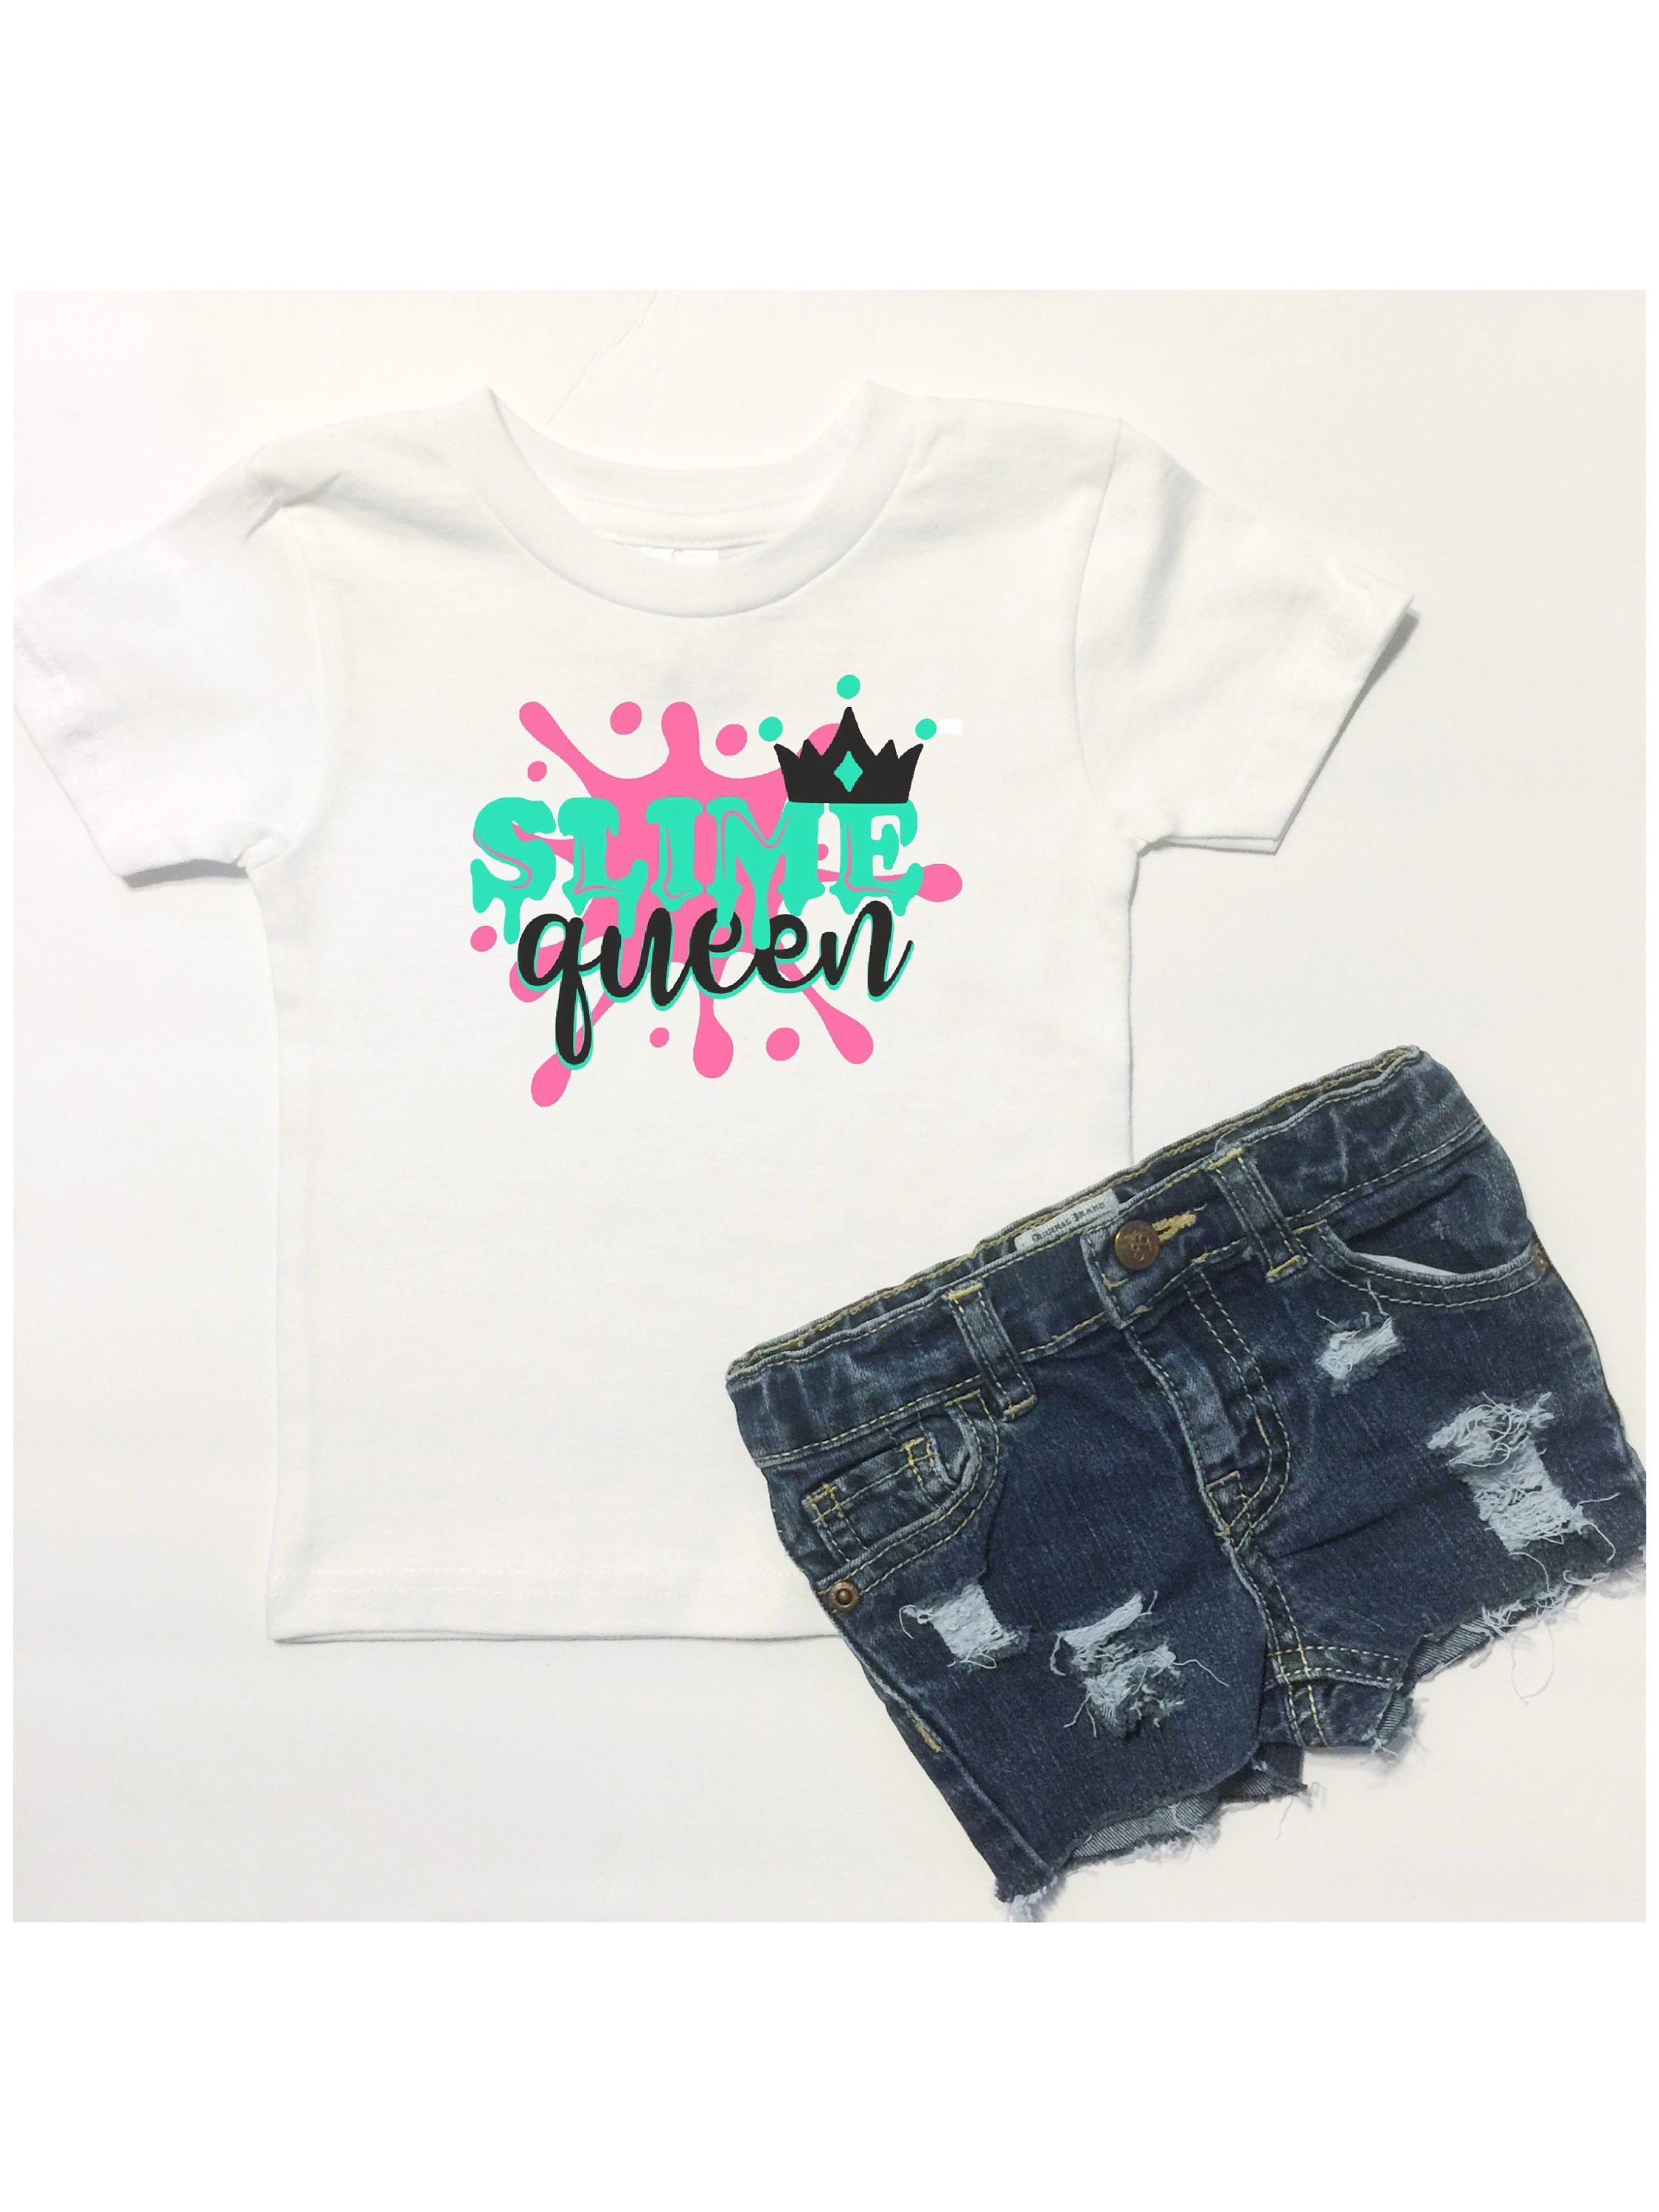 a6e9c82d0e001 Slime Queen, Girls Slime Shirt, Slime Birthday Party Outfit, Slime Tank Top,